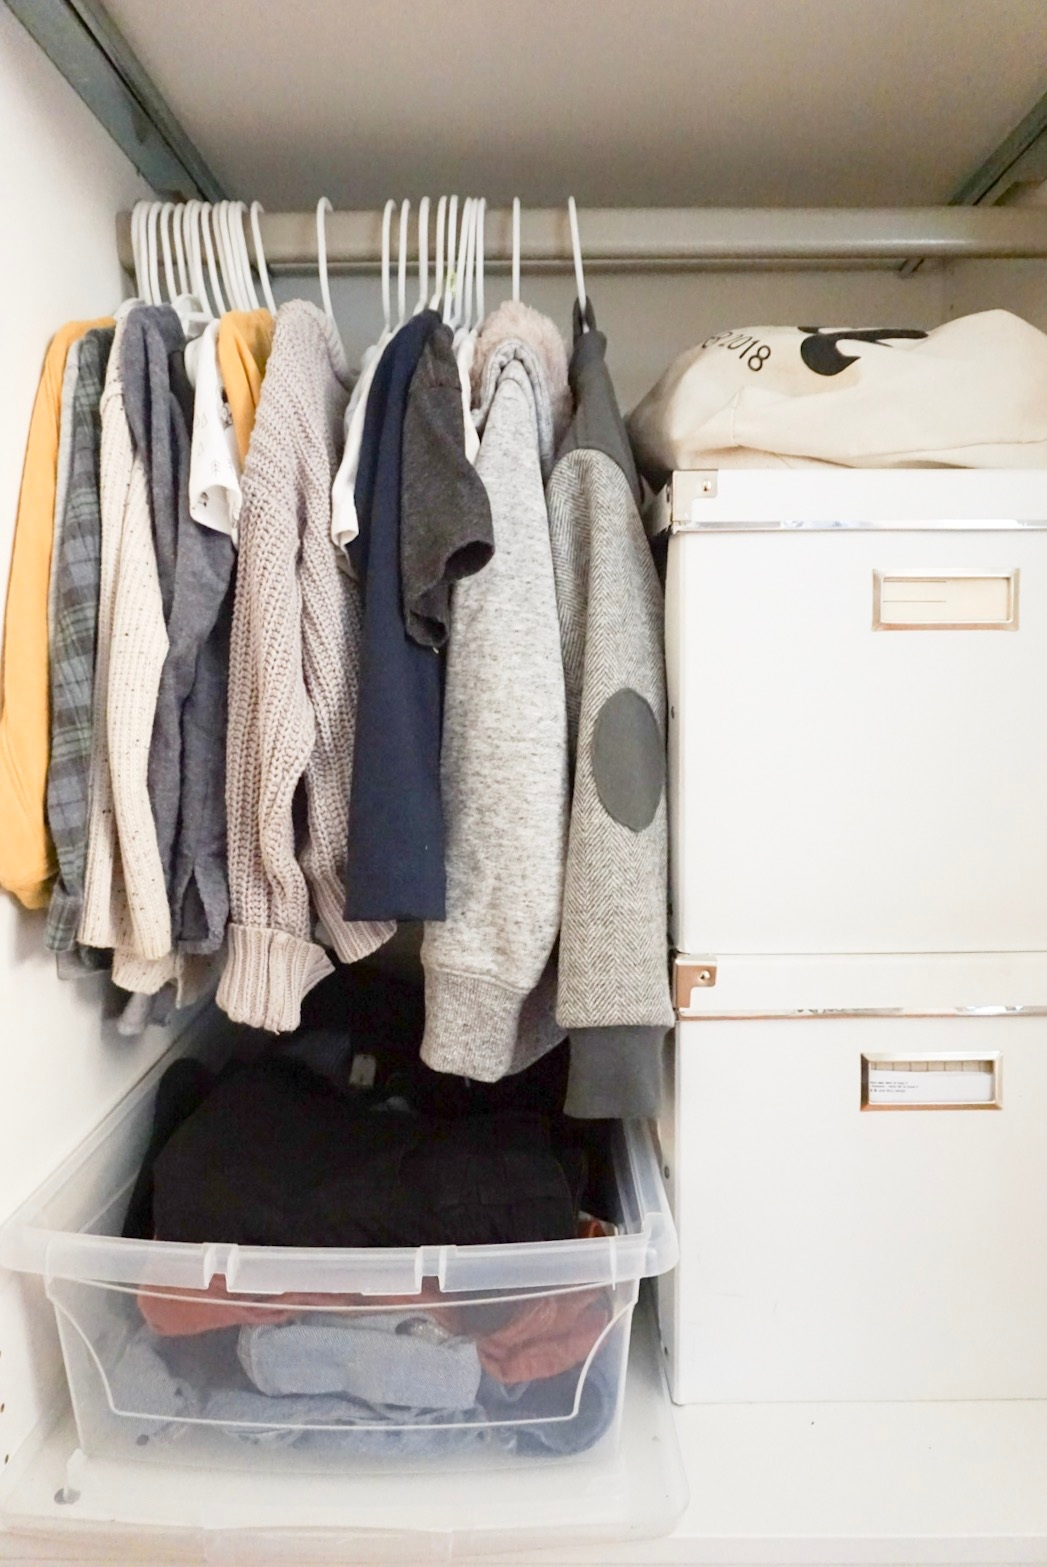 Theo's section of our shared closet and our file boxes.